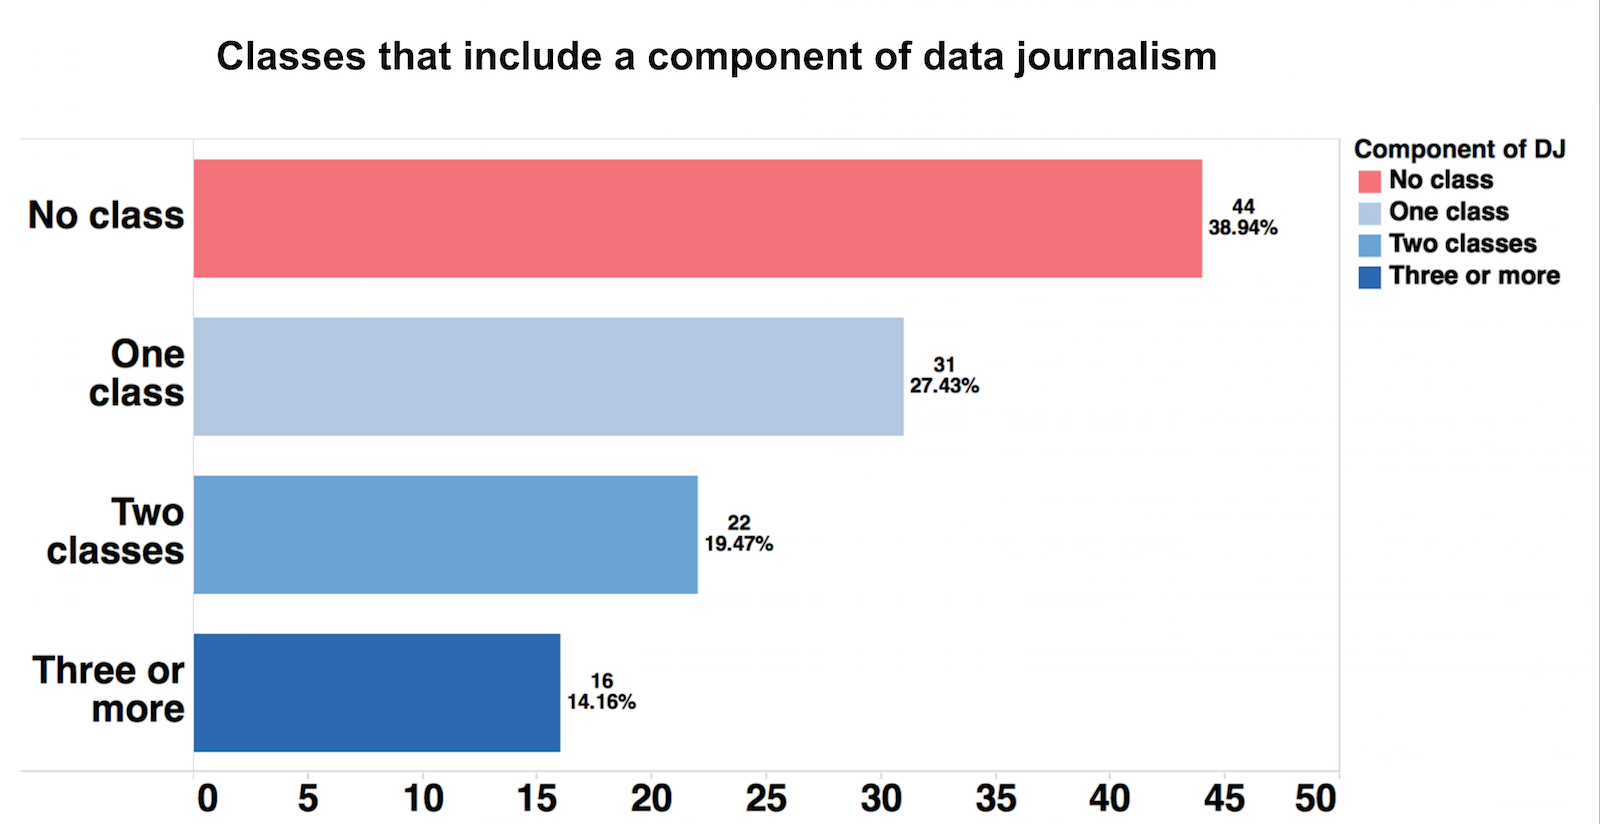 Classes offered at ACEJMC-accredited journalism schools that contain data journalism as a component.